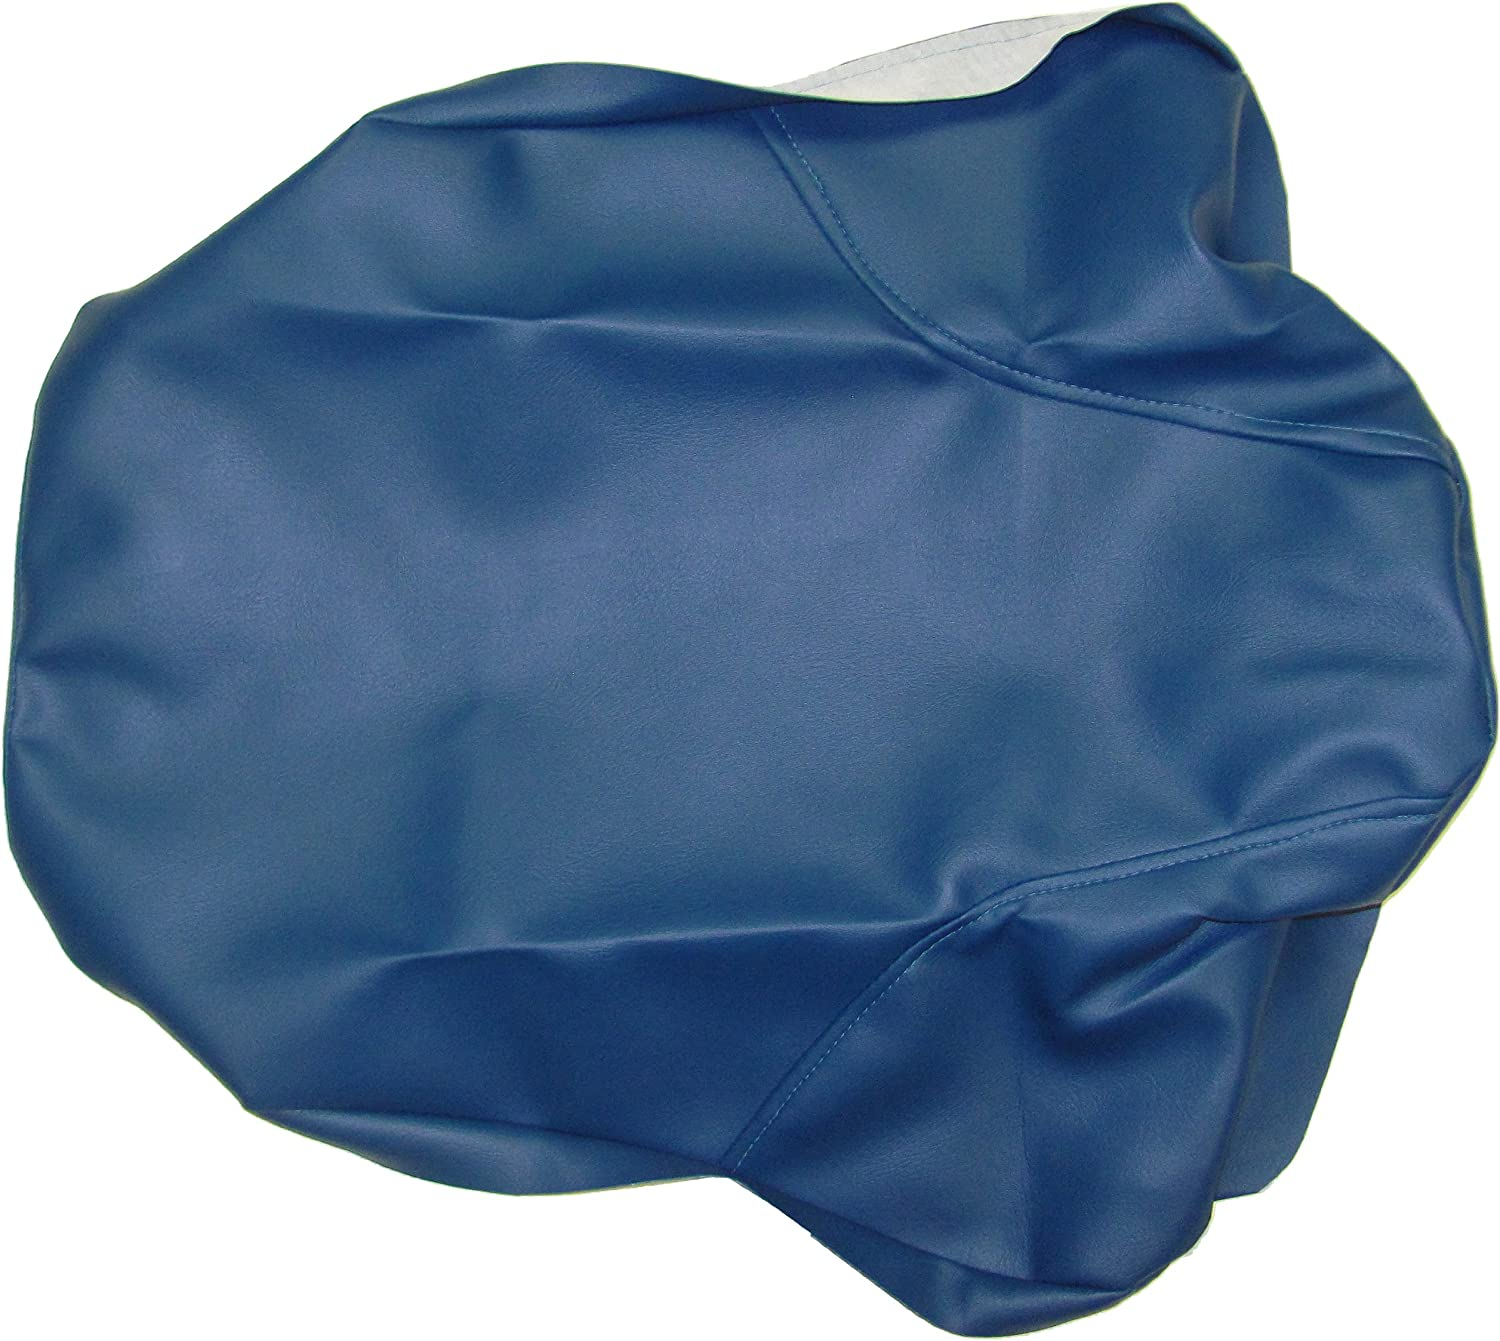 Freedom County ATV FC330 Blue Replacement Seat Cover for Suzuki LT250R Quad Racer 85-86